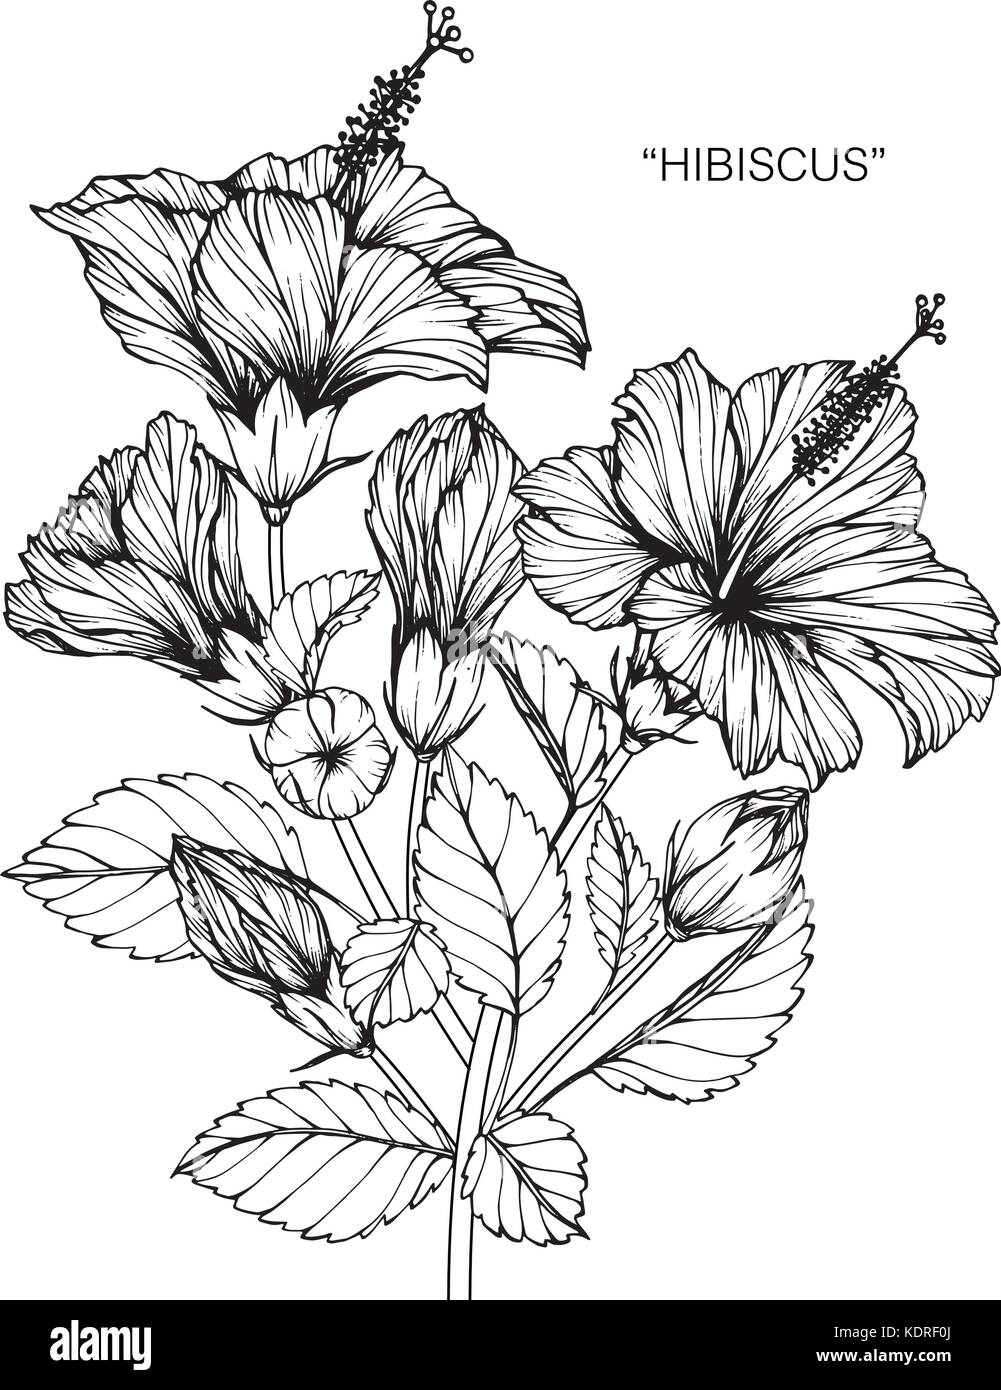 Line Drawing Flower Vector : Hibiscus flower drawing illustration black and white with